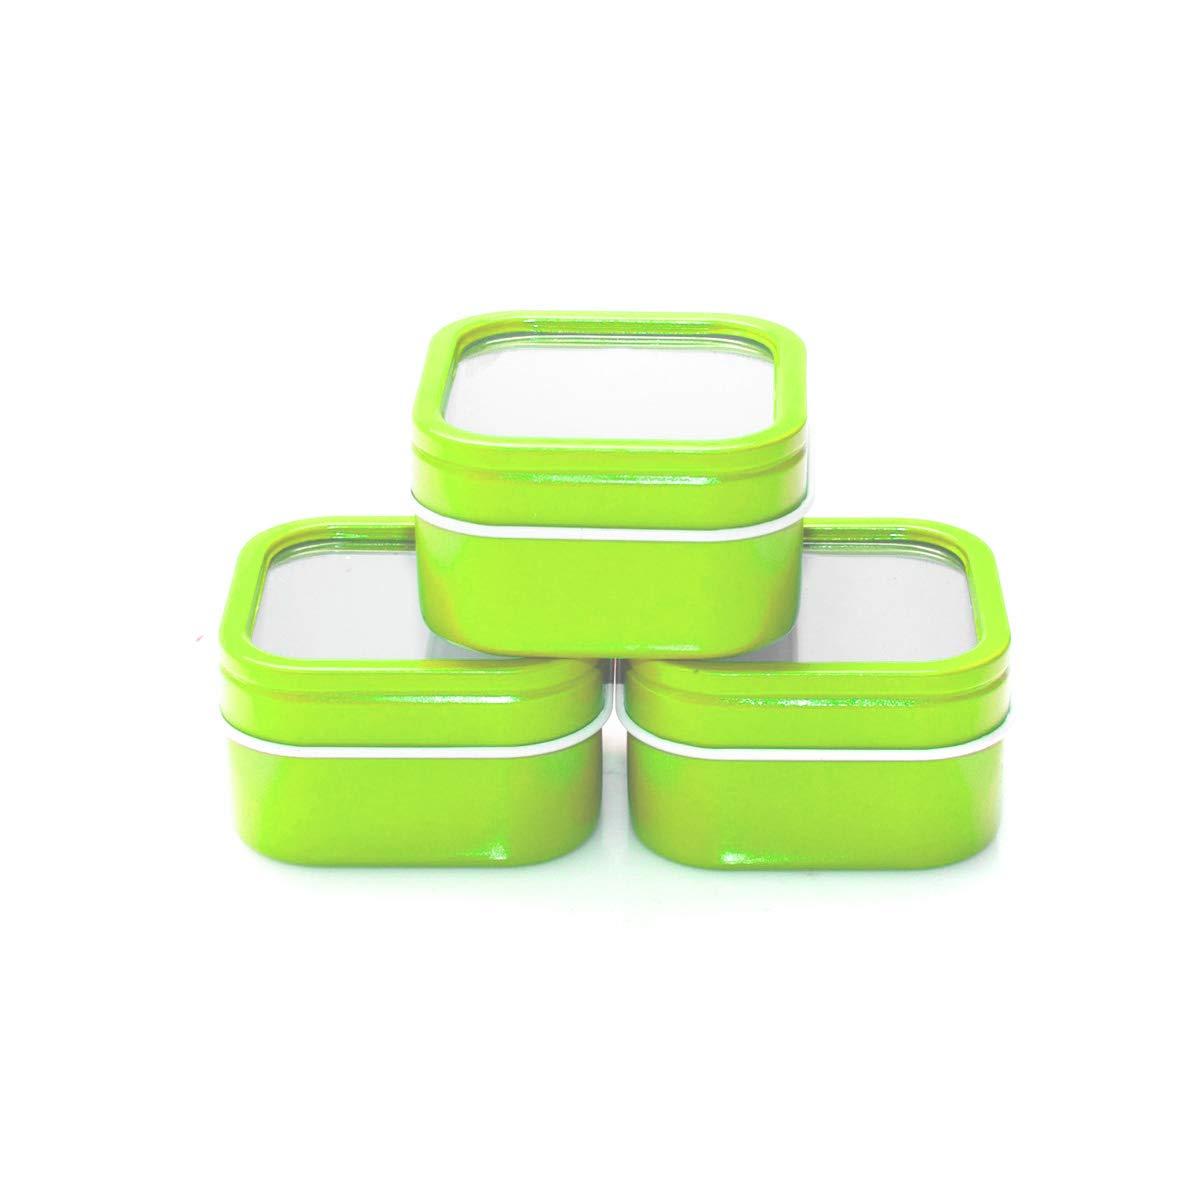 Mimi Pack 4 oz Square Tin Cans with Clear Window Slip Cover Lid for Favors, Spices, Storage, Candies, Mints, Candles and Crafts 24 Pack (Lime Green)